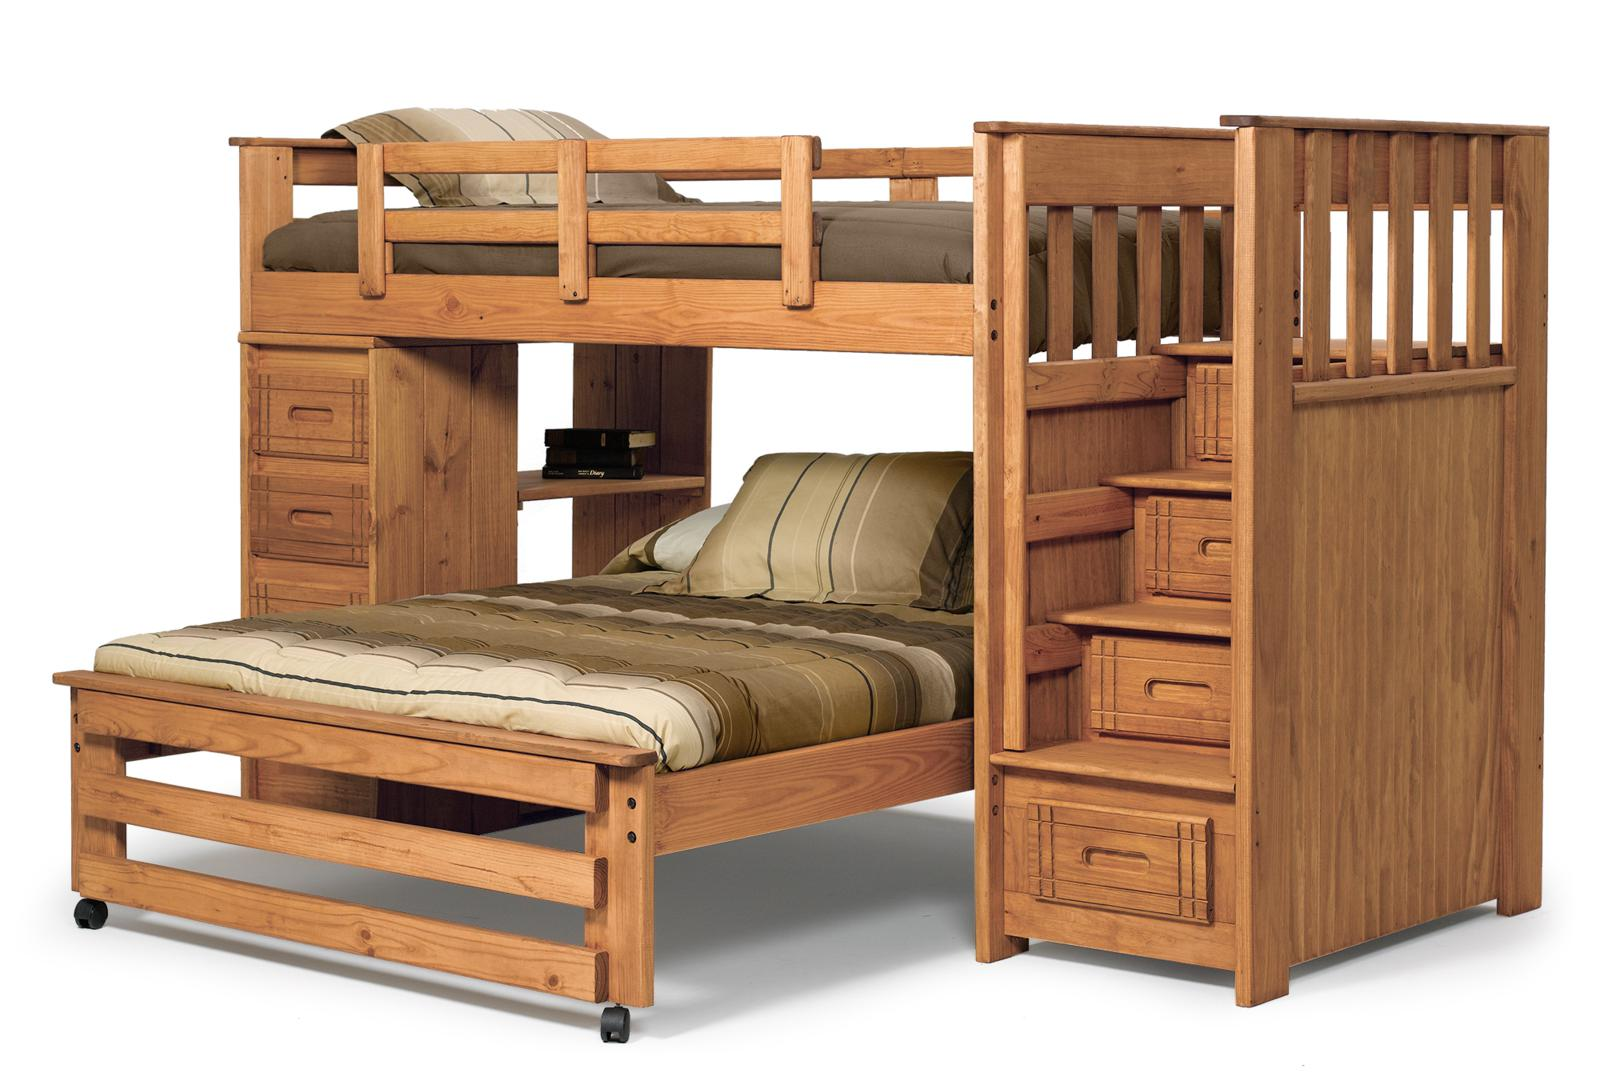 Astonishing L Shaped Bunk Beds Designs With Pictures